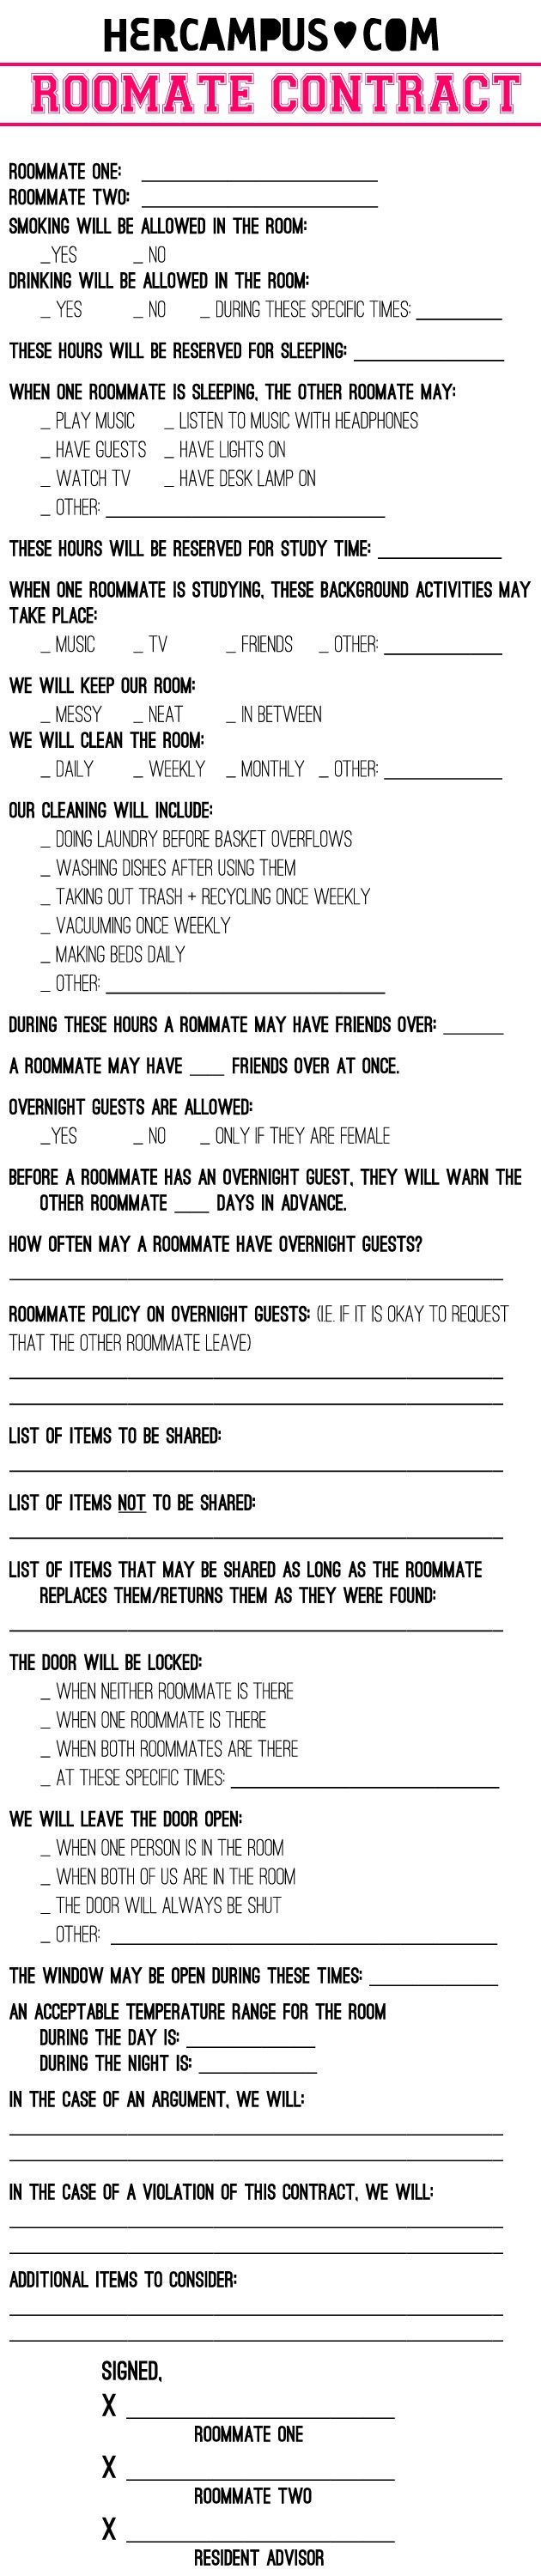 Should You Make A Roommate Contract? (Plus A Roommate Contract Template!) Part 38